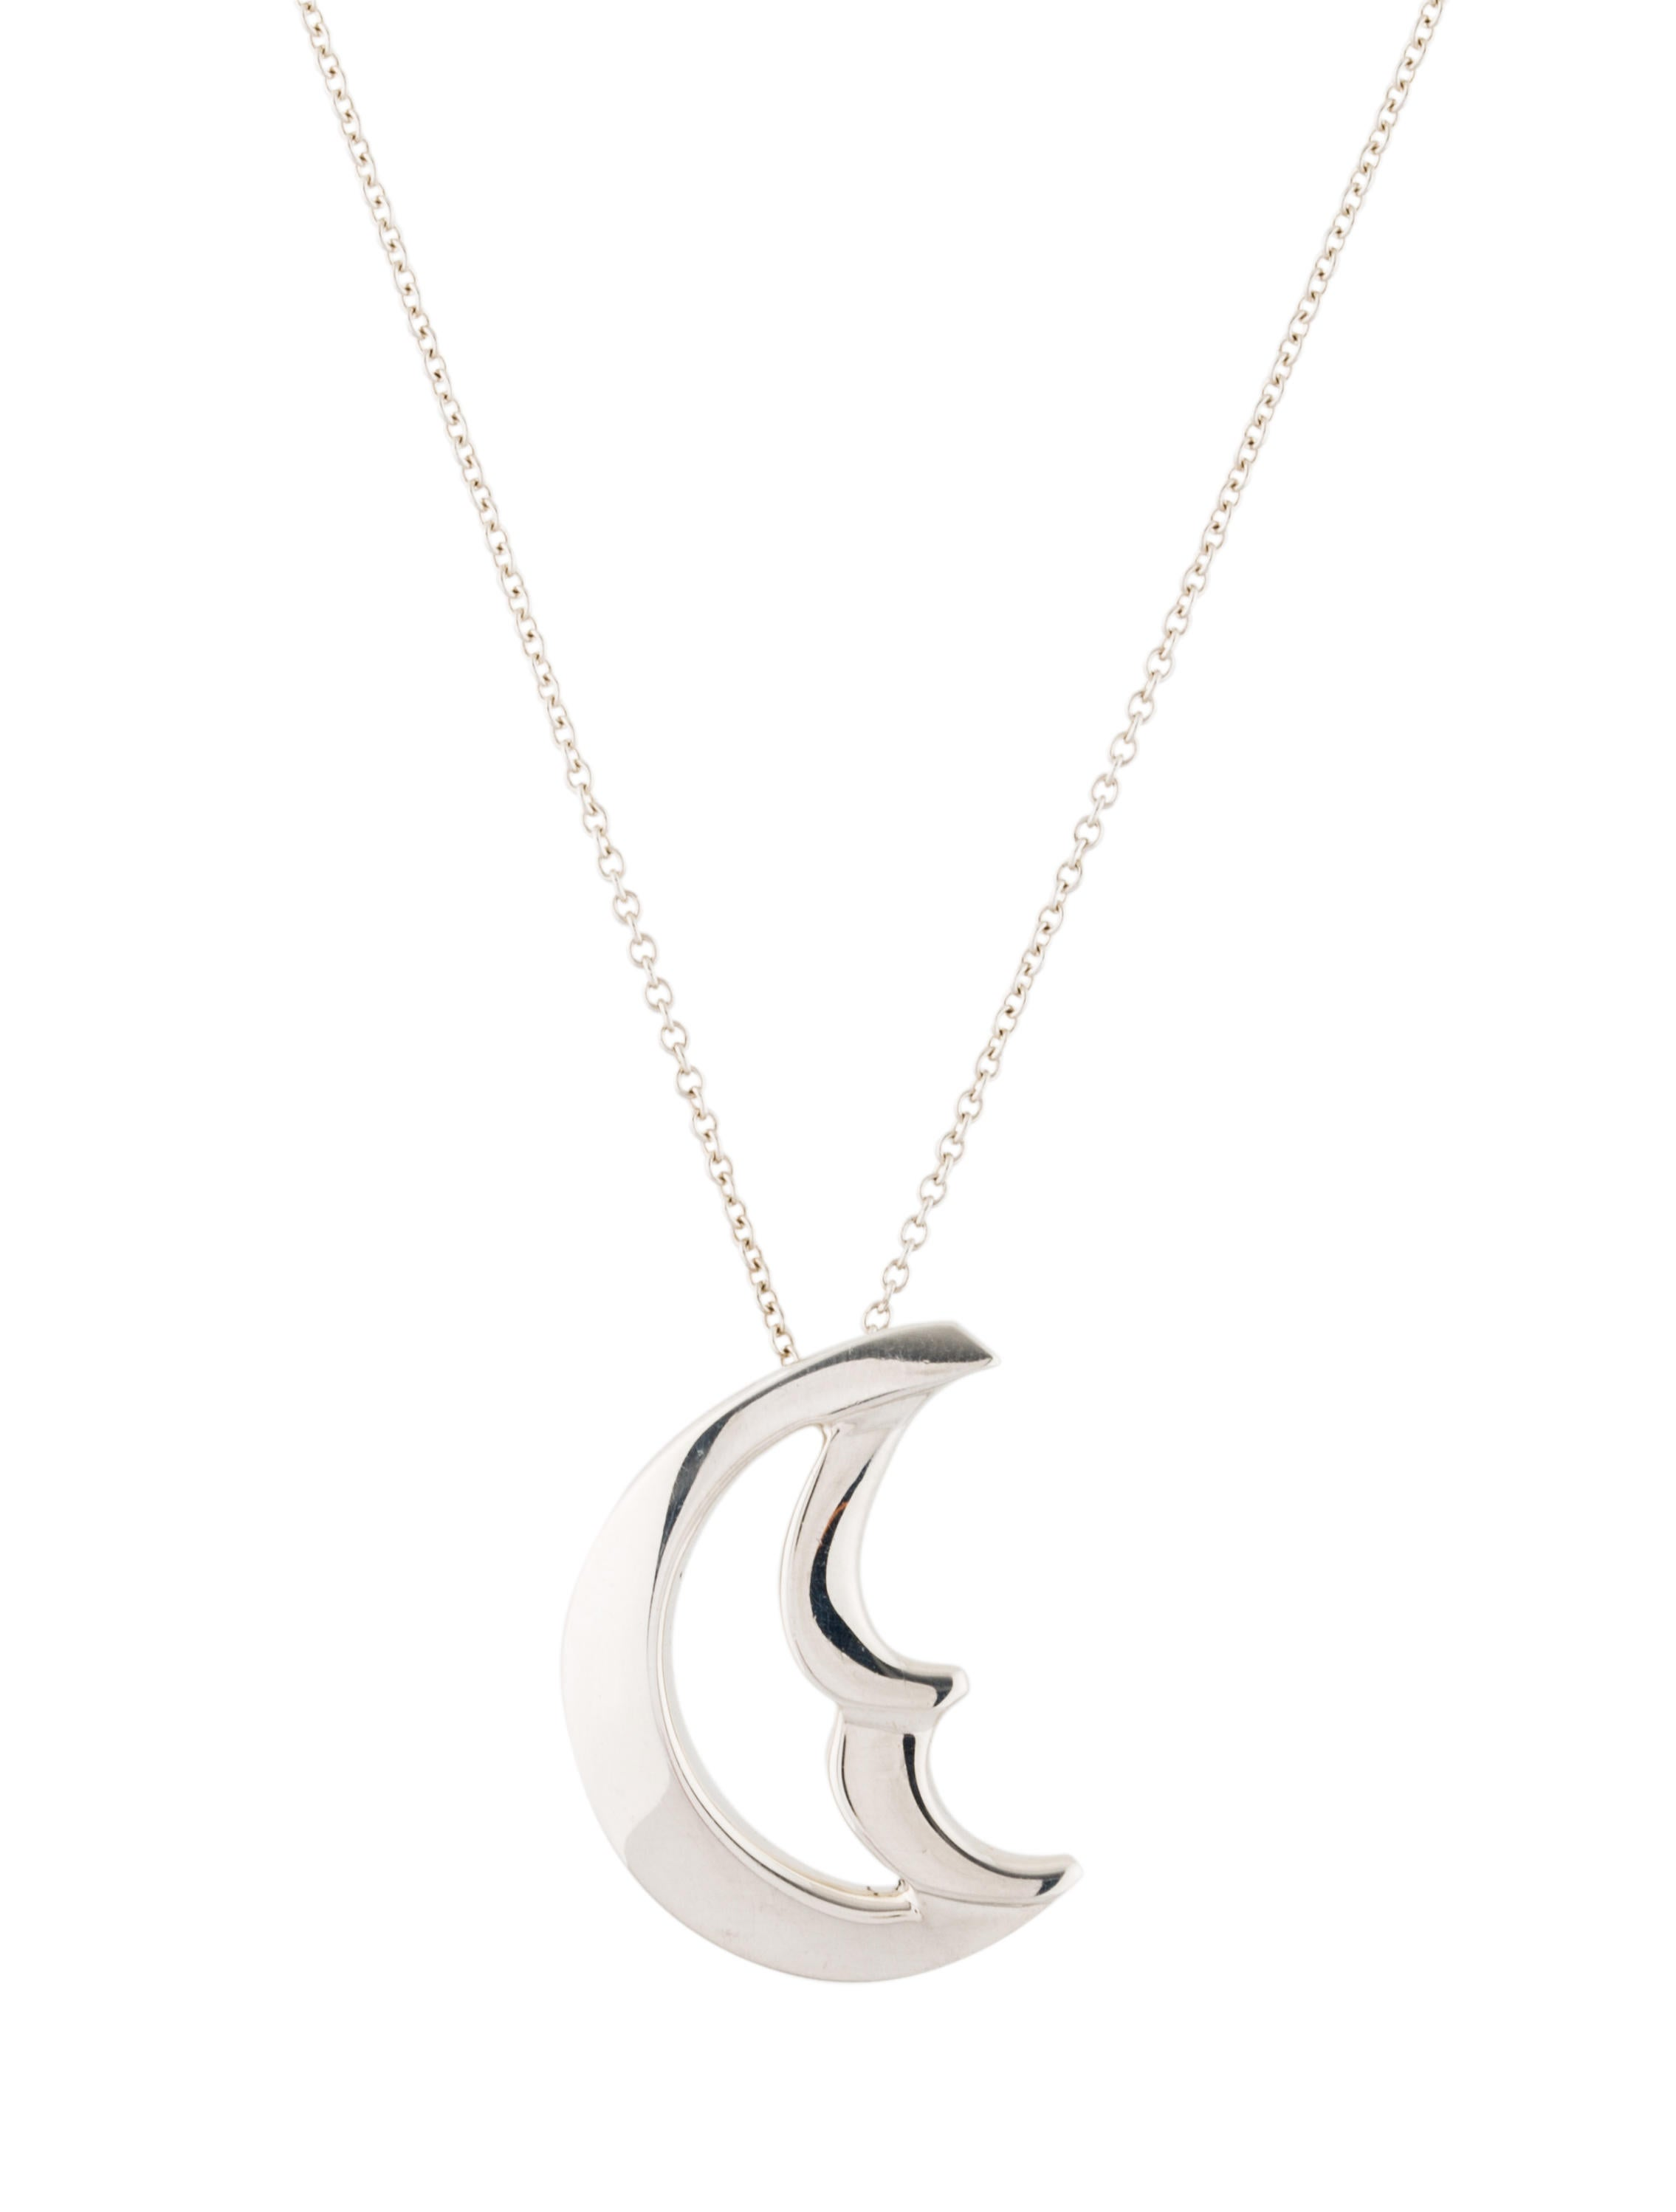 cffb overstock today la free key product jewelry preciosa moon lock double cz heart necklace pendant watches star sterling half cut out strand silver shipping